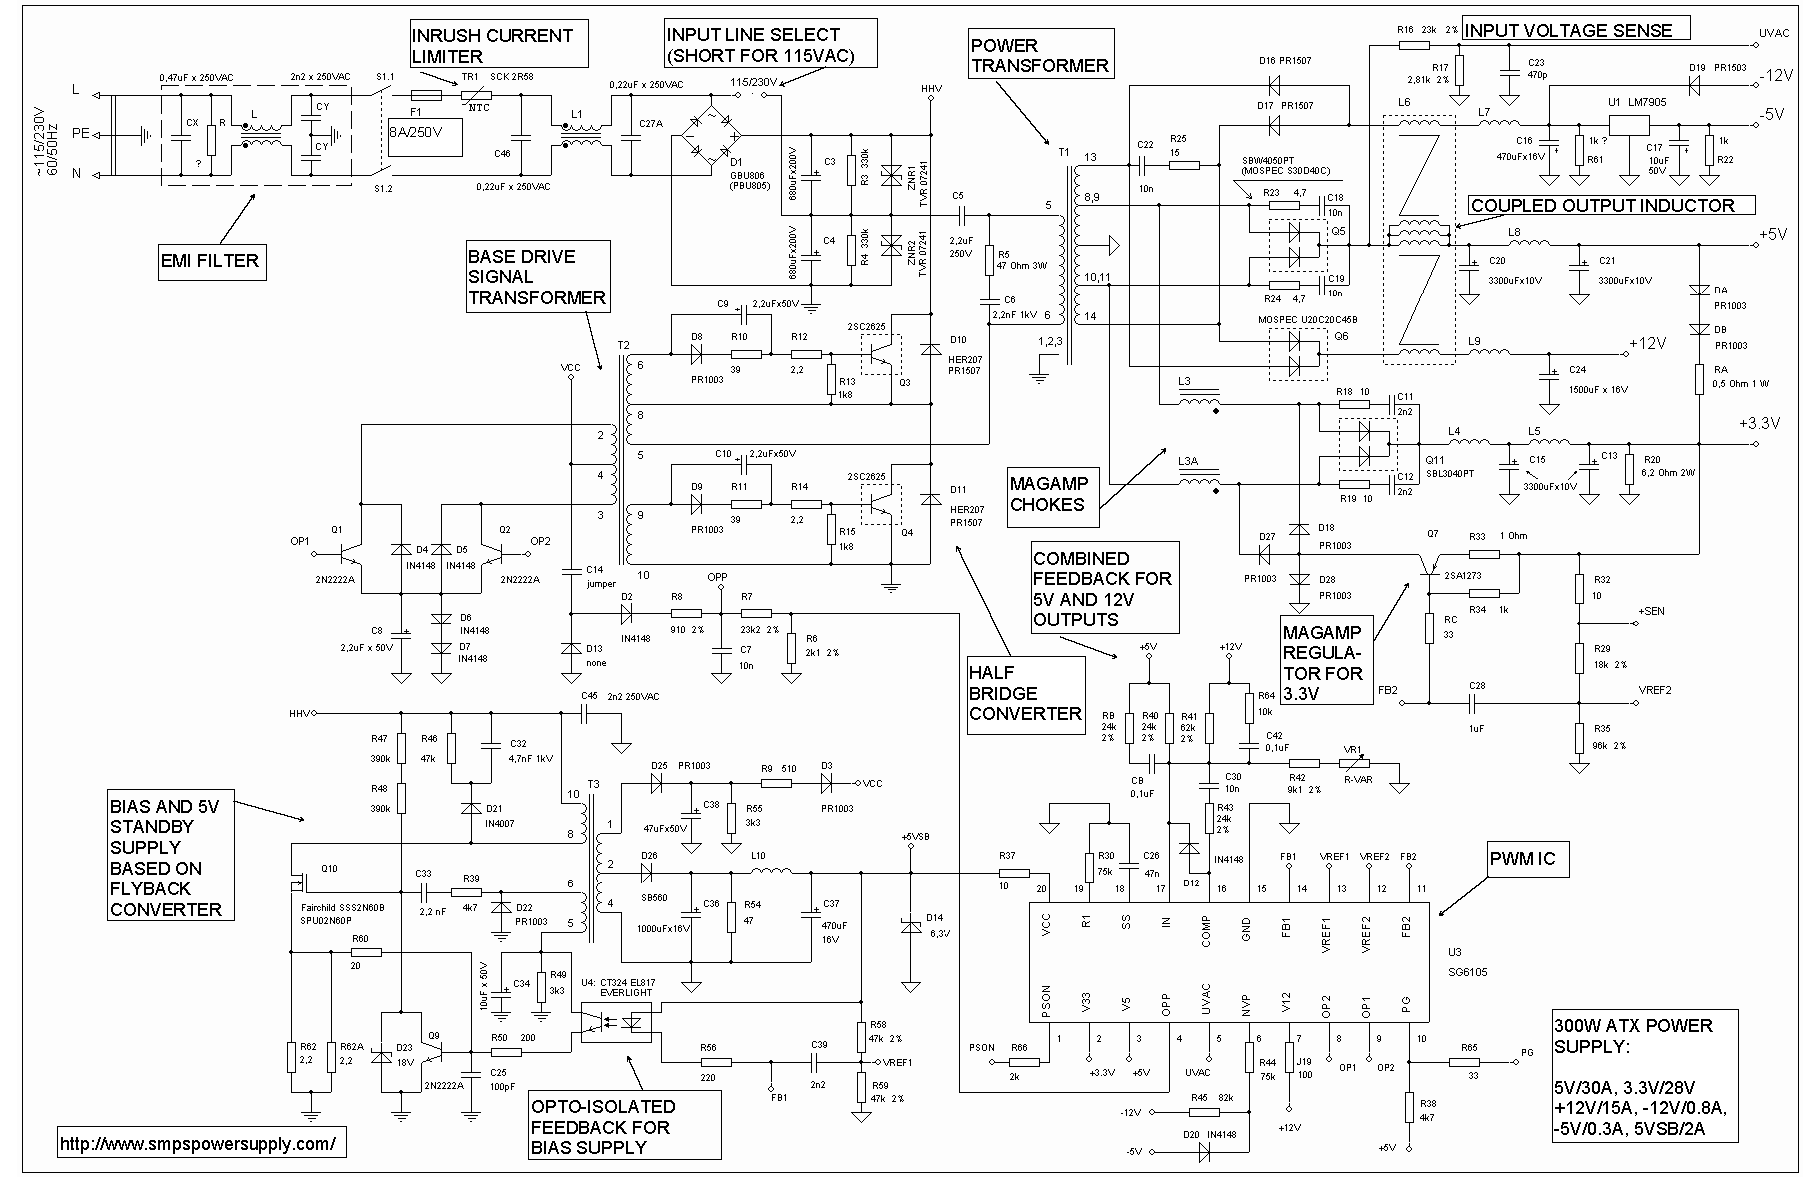 Dell 24 Pin Power Supply Wiring Diagram Not Lossing Laptop Schematic Atx Switching Bestec 250 12z Compaq